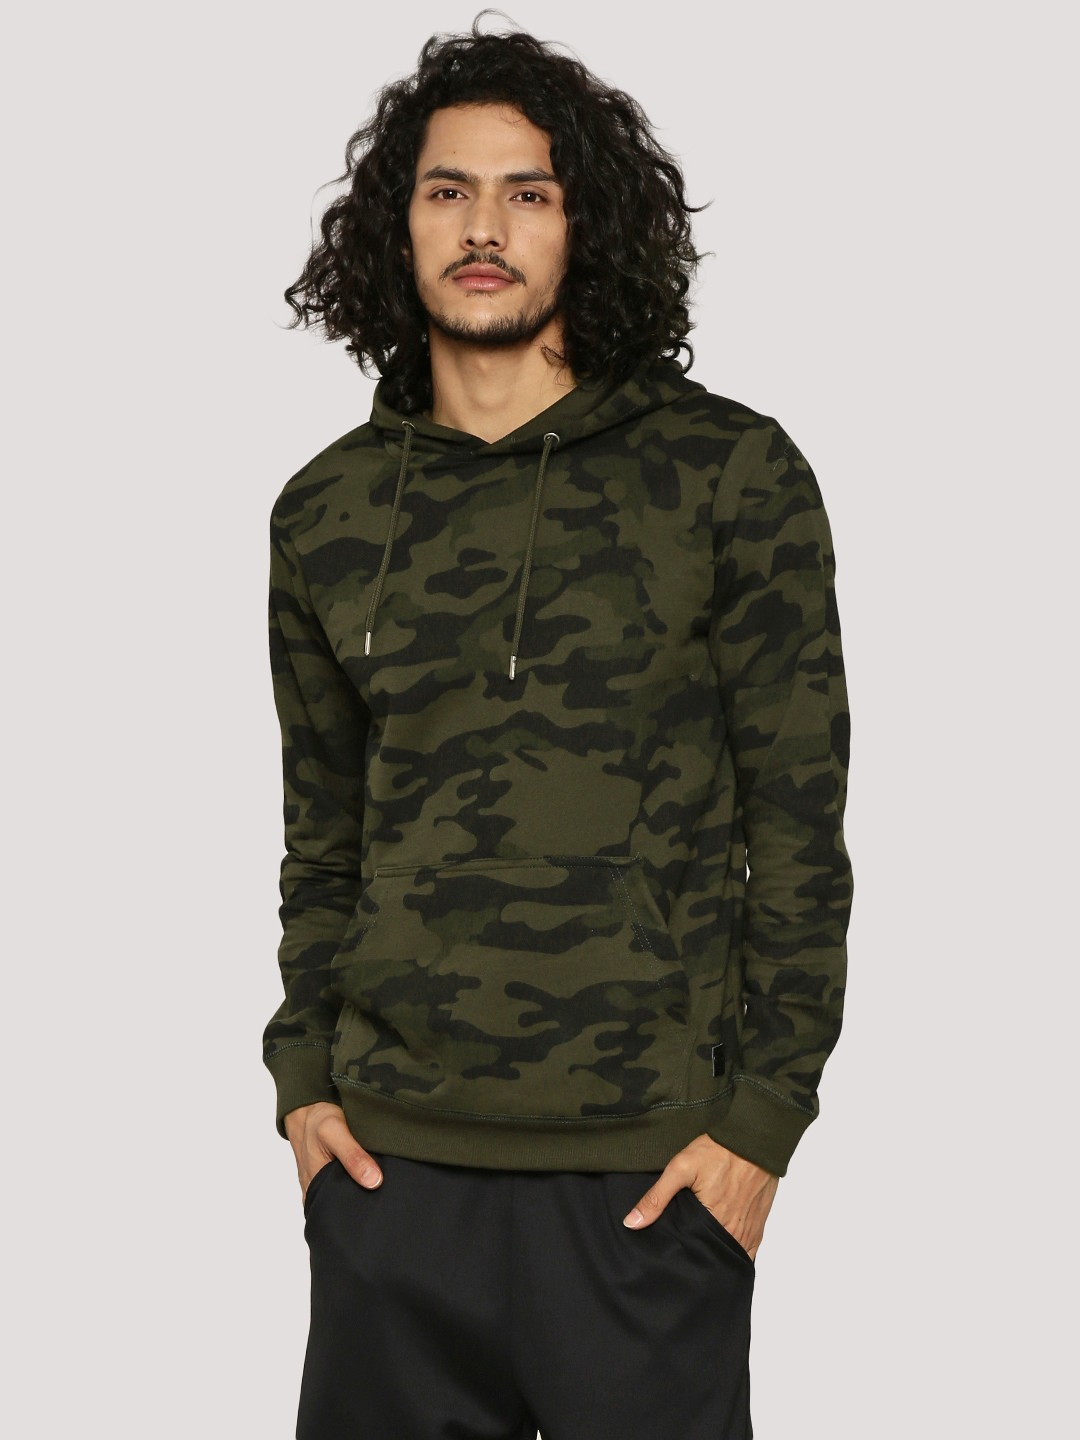 Camo Hoodie India Buy Brave Soul Khaki Camo Hoodie For Men Online In India